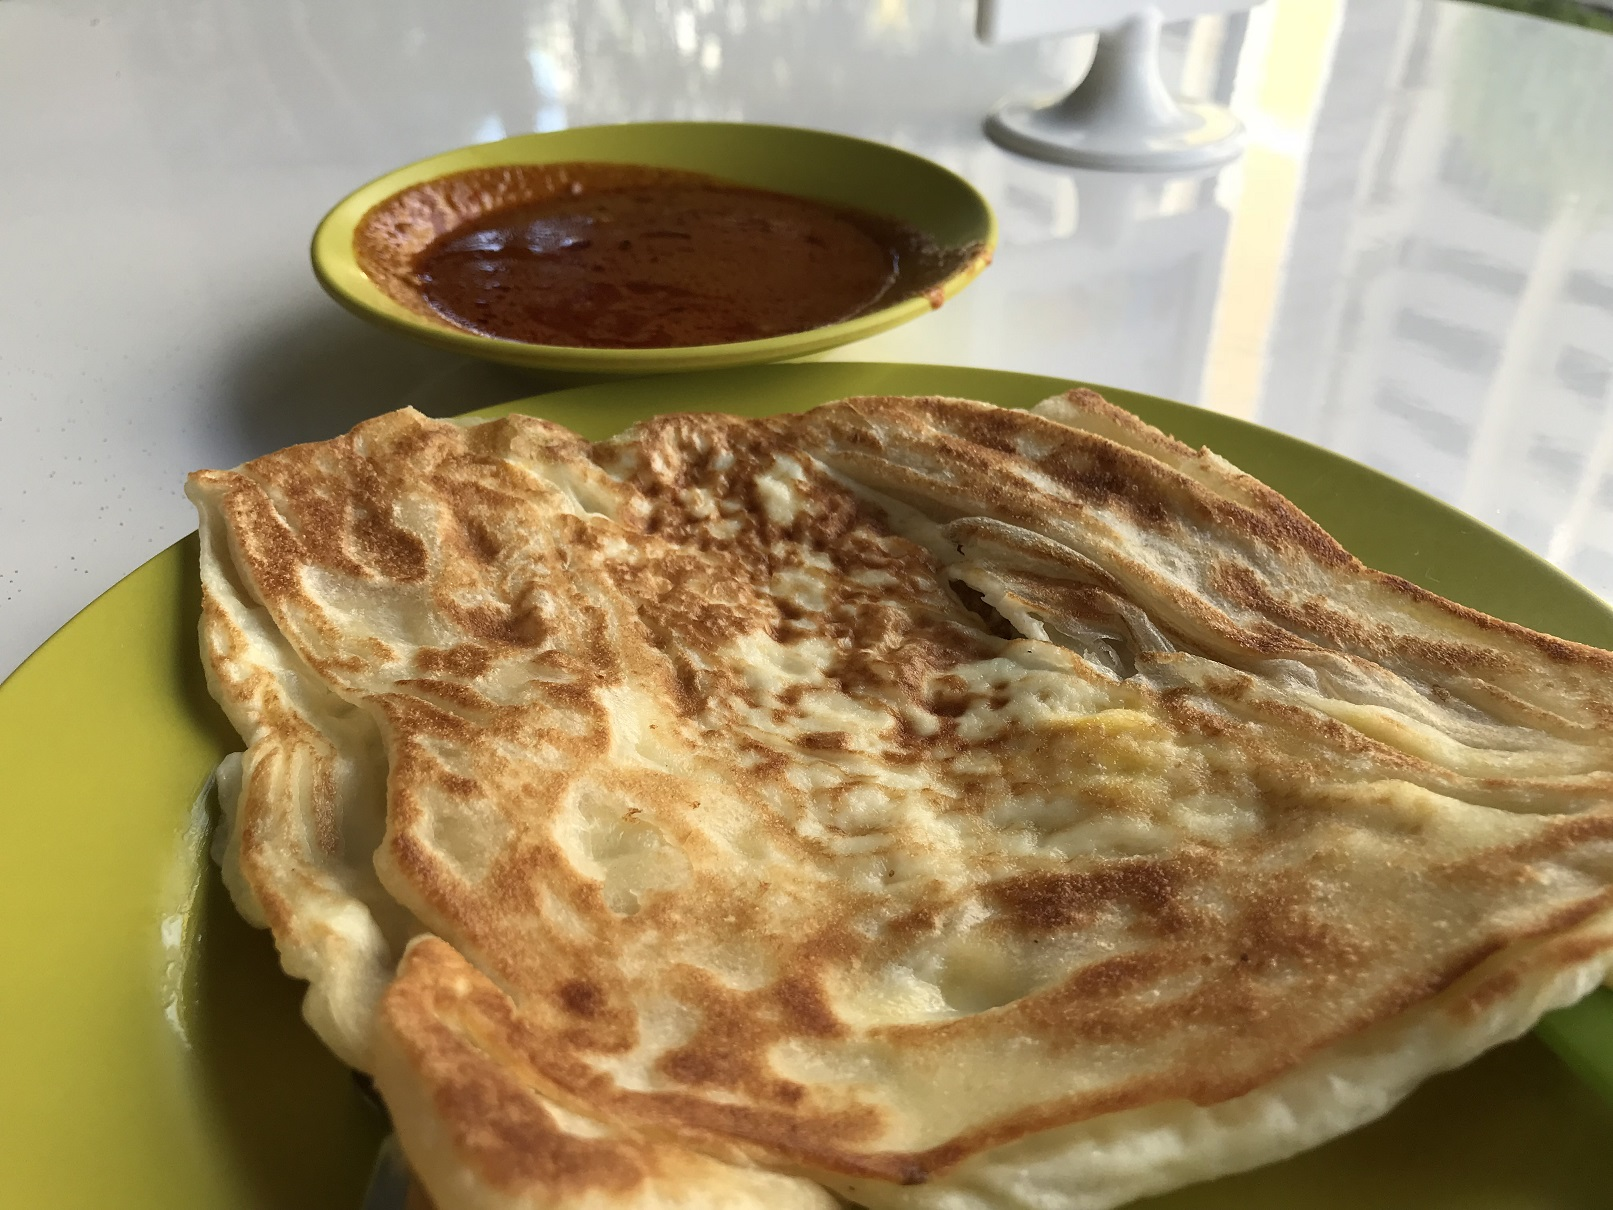 Then some roti prata (an hour and a half later)...